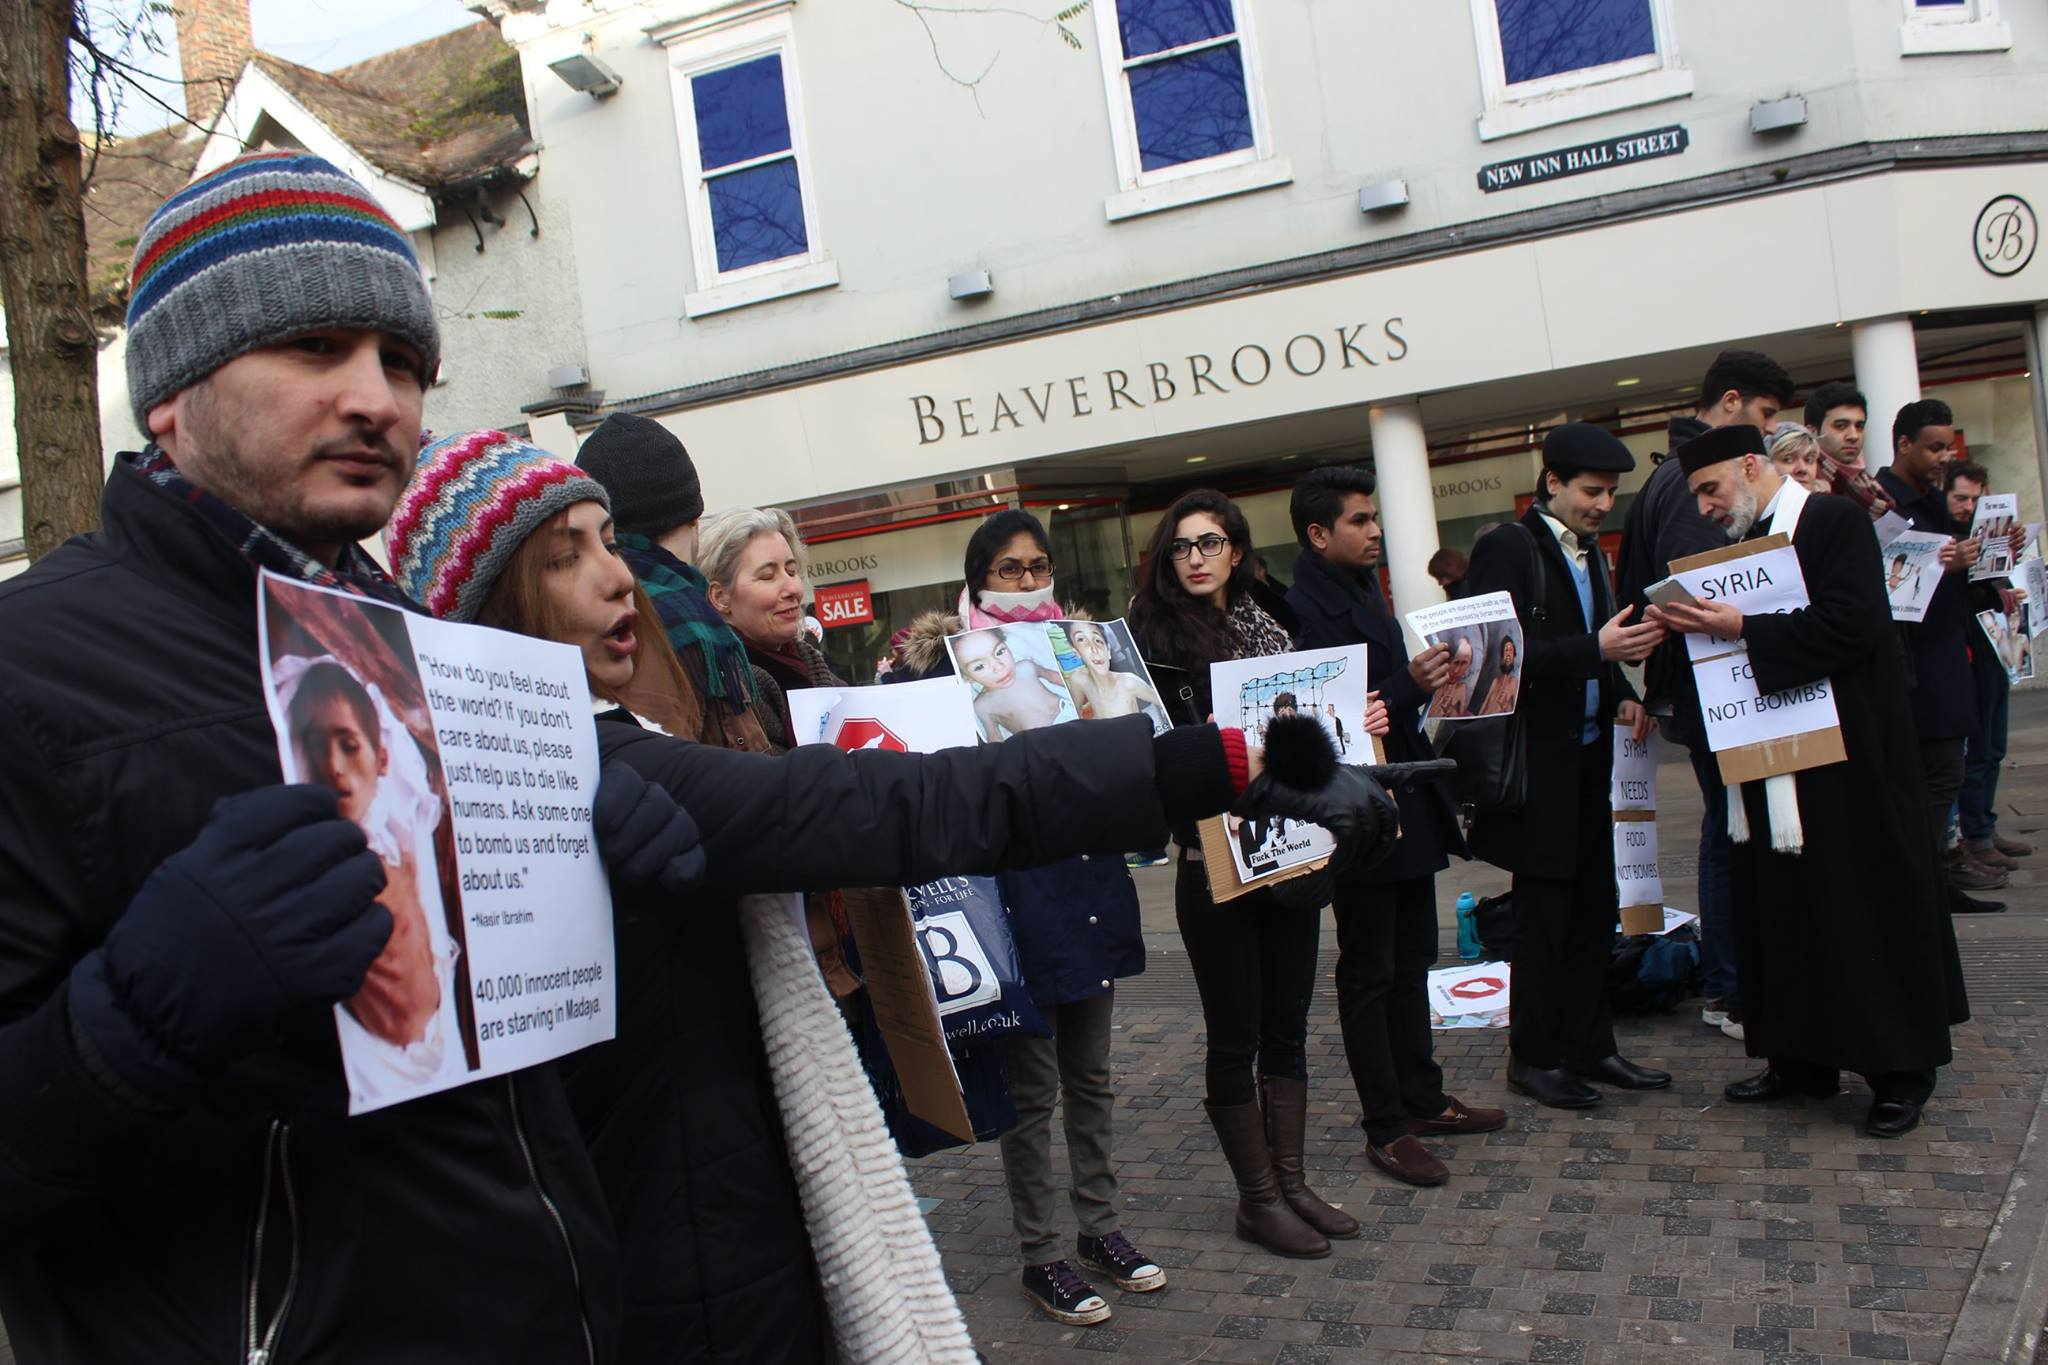 Syrian starvation prompts protest in Oxford